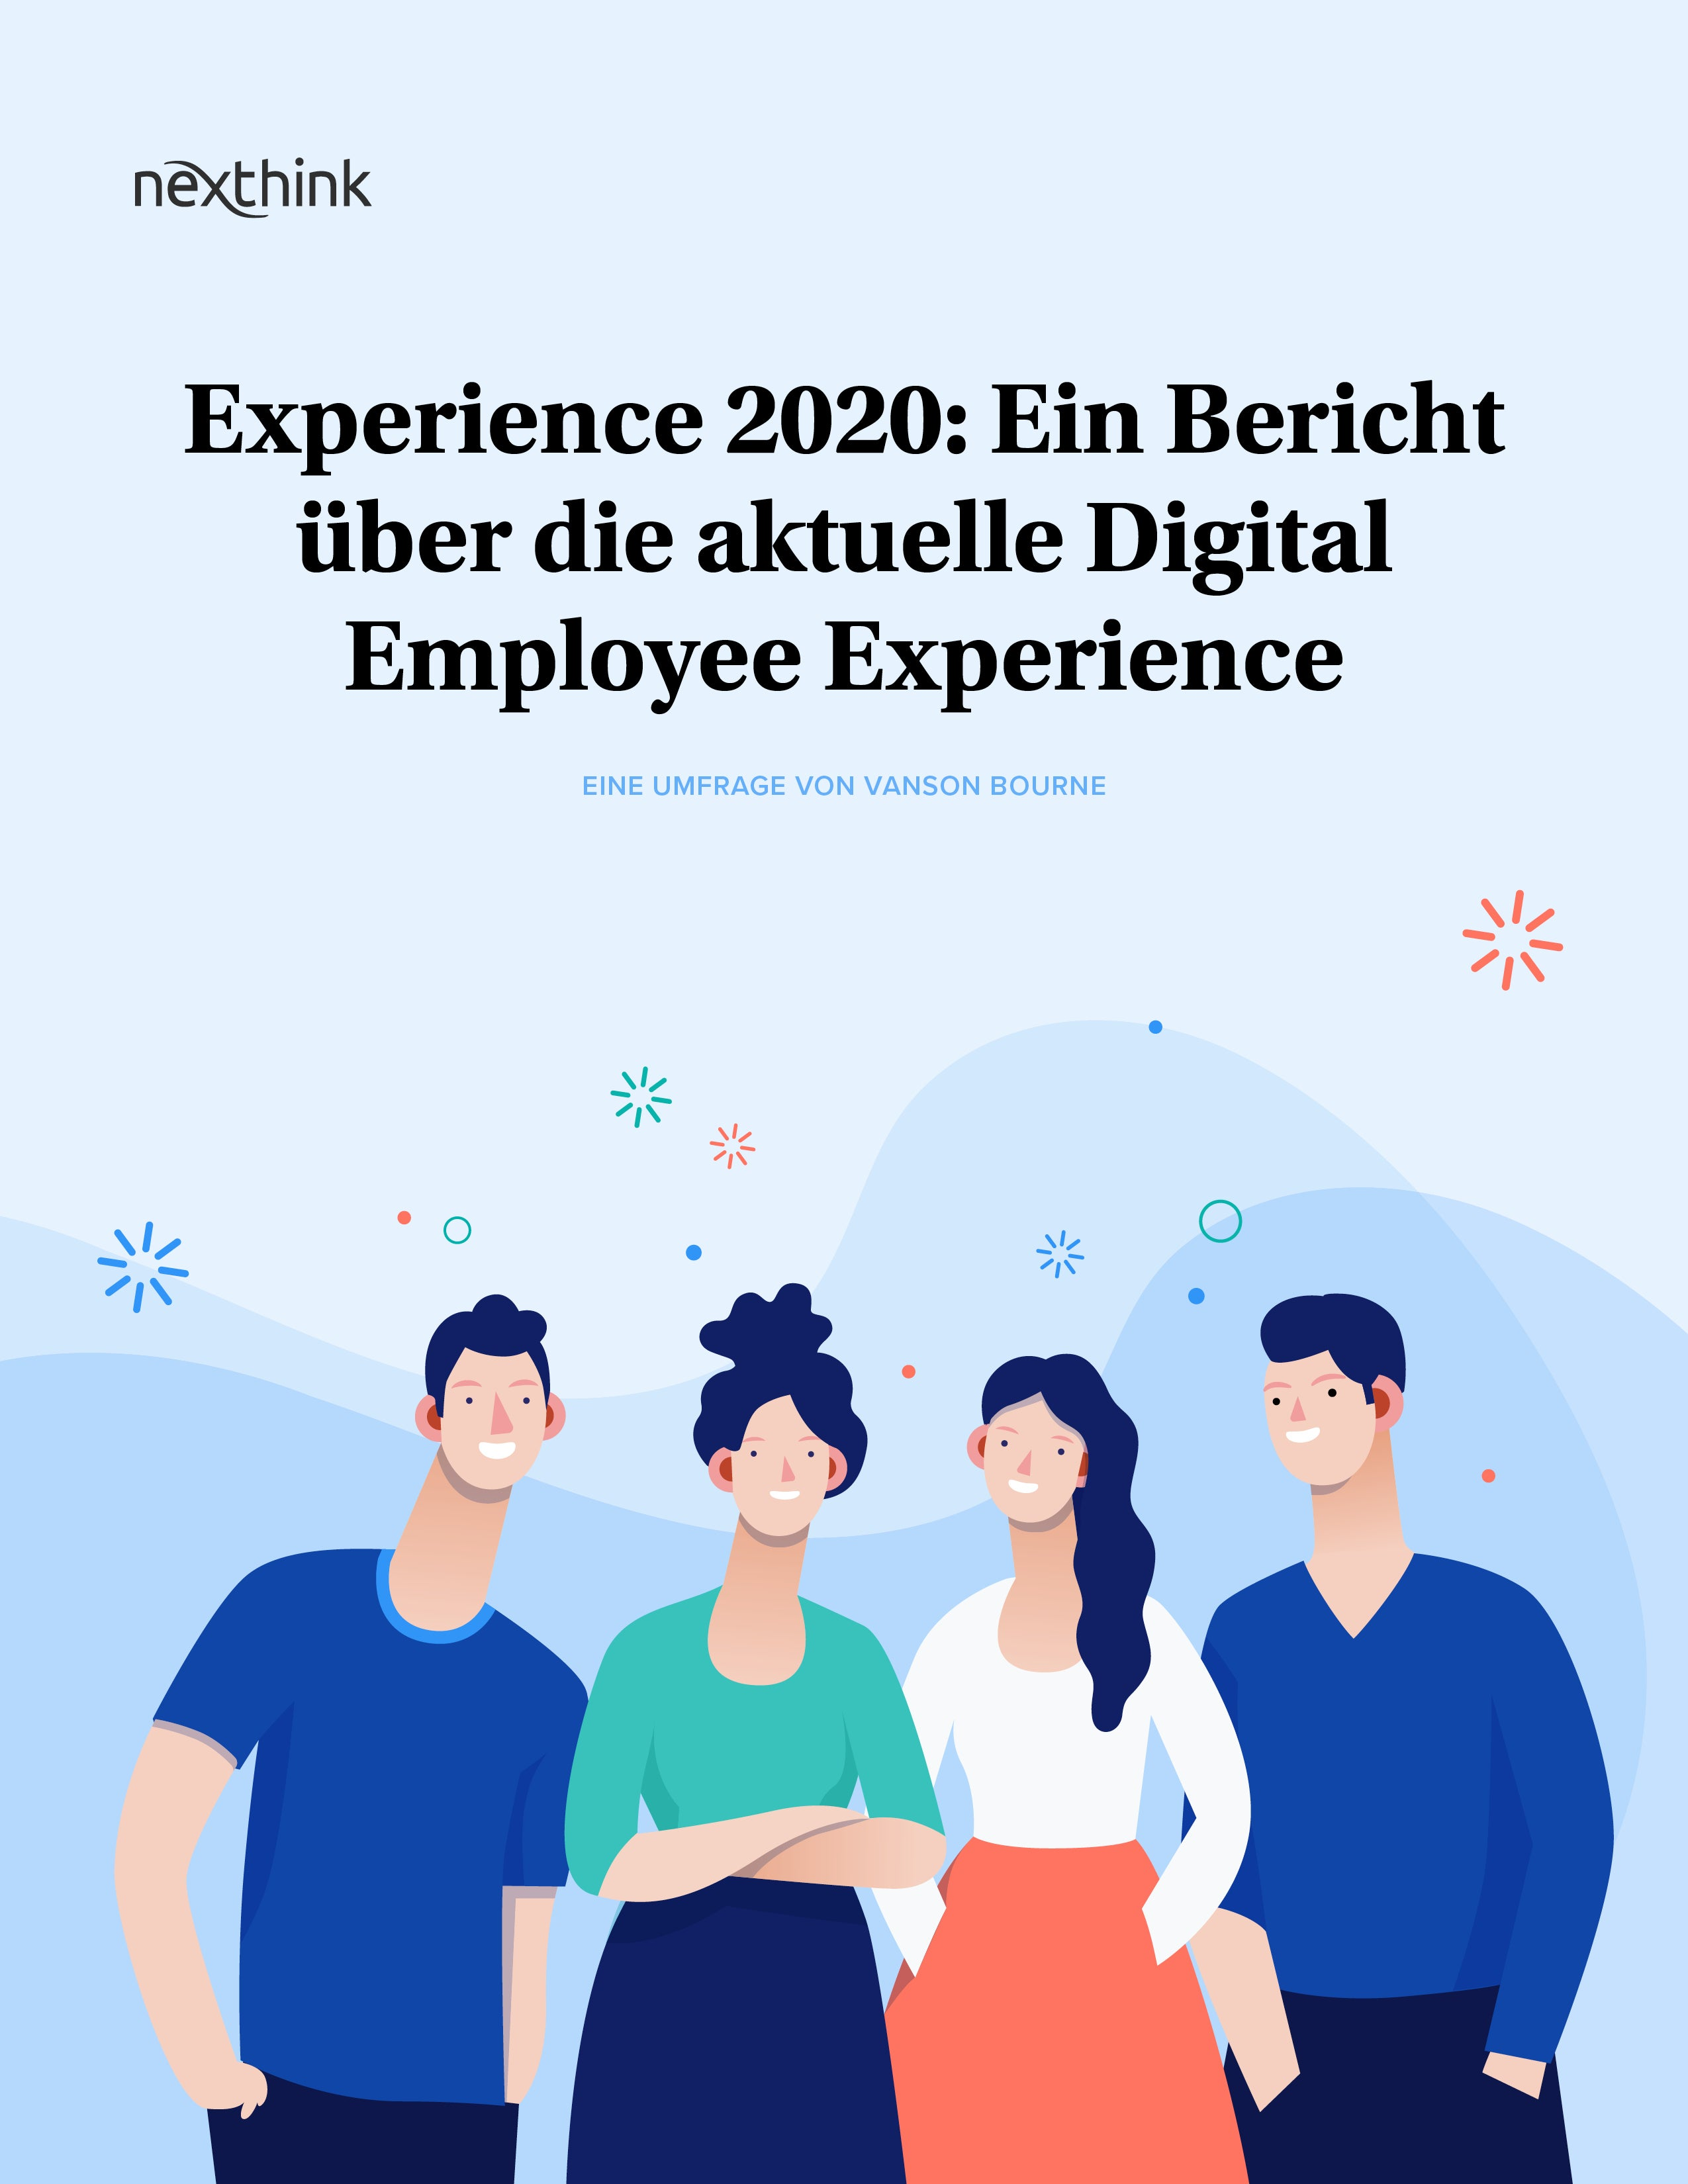 Der Experience 2020 Report